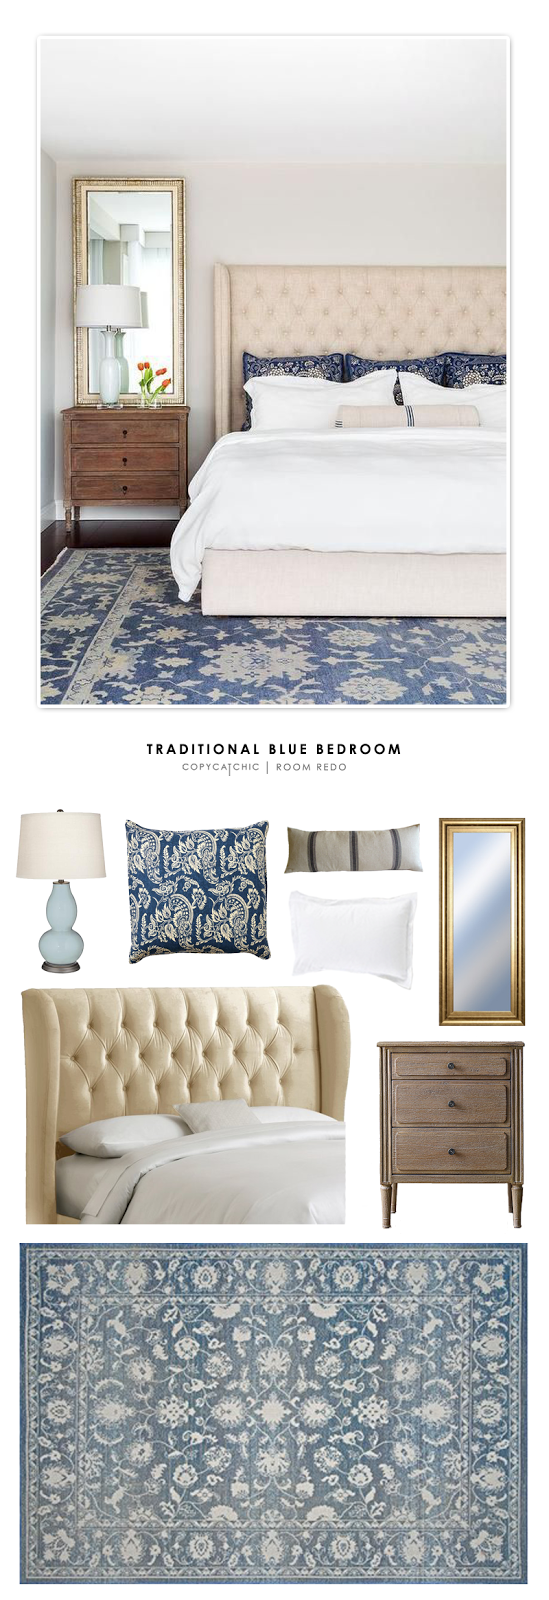 copy cat chic room redo blue traditional bedroom copy cat chic